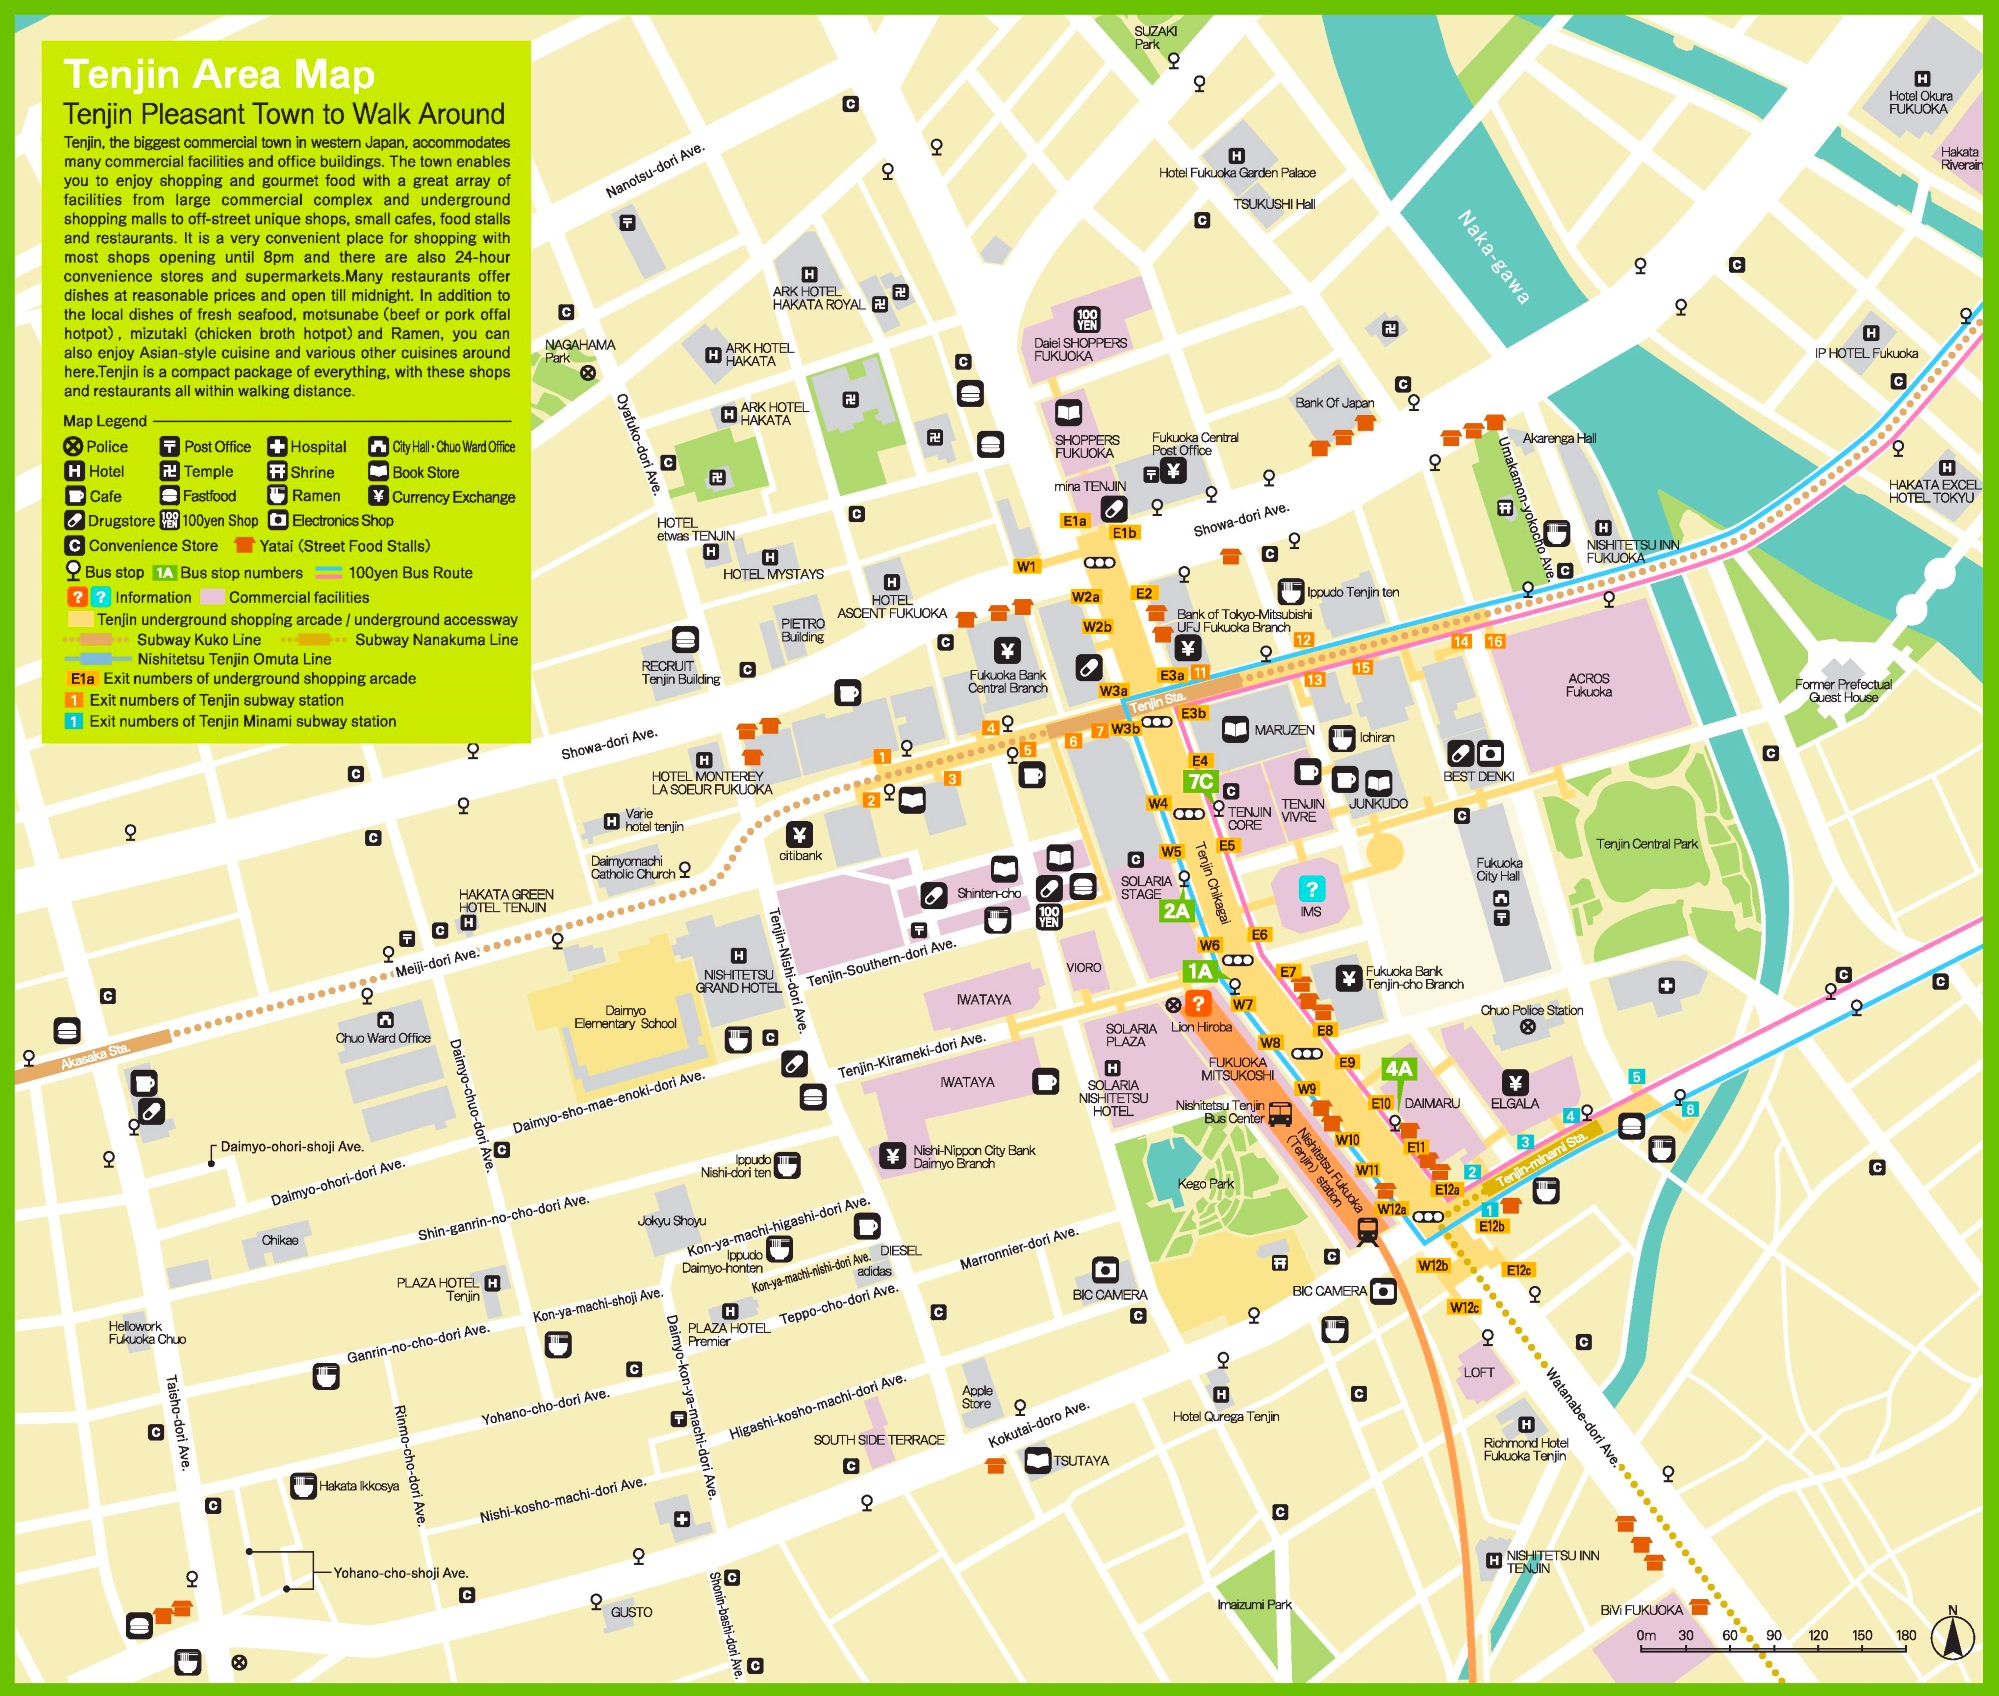 Tenjin Area map